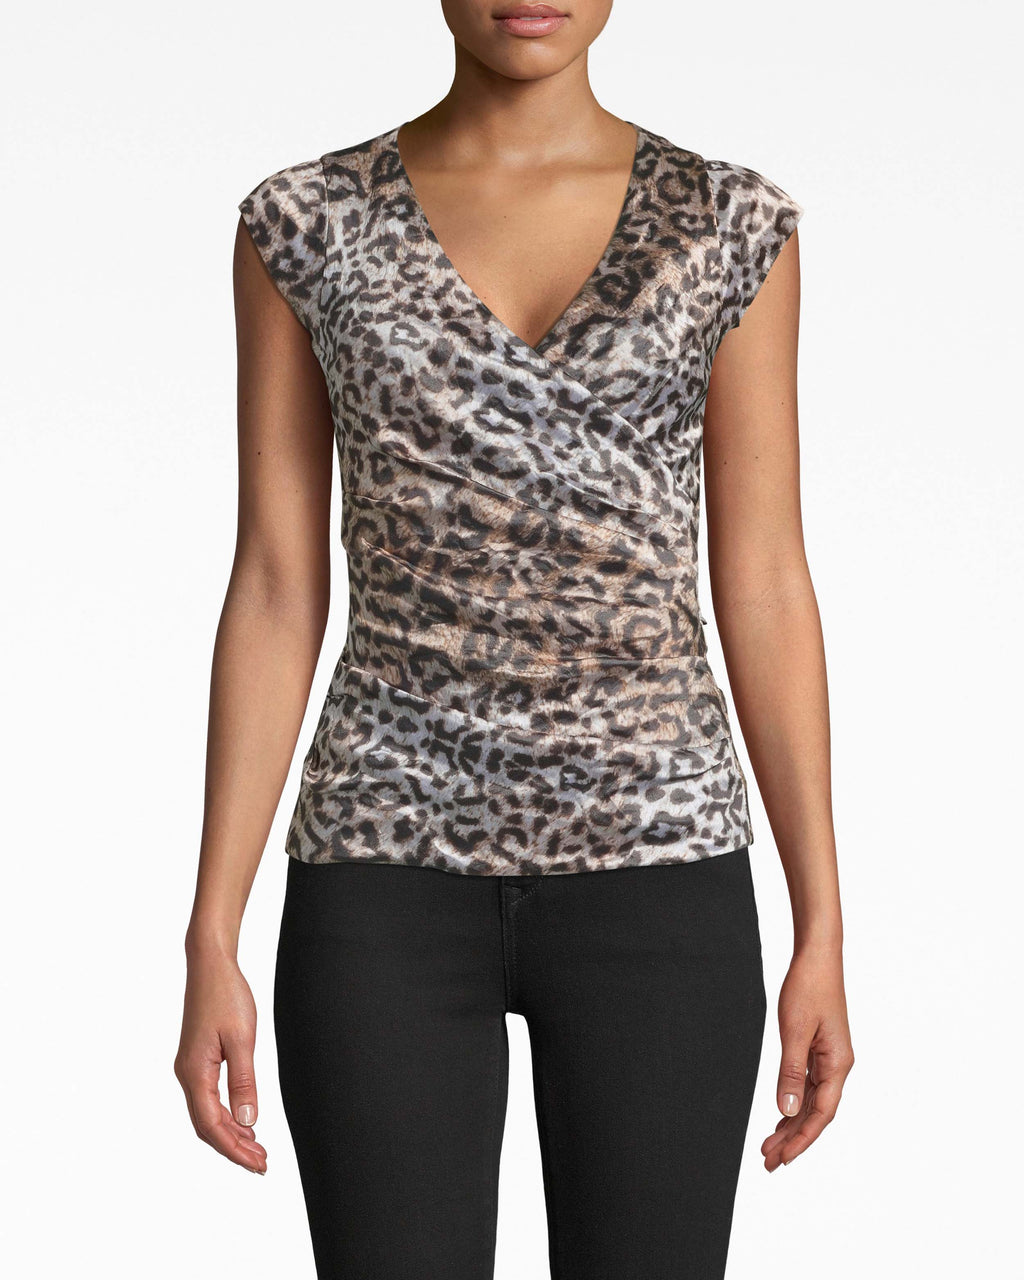 BF20053 - NYC LEOPARD TECHNO METAL LOGAN TOP - tops - blouses - Textured fabric gathering, a deep v-neck, and short cap sleeves make this leopard blouse a standout. The back zipper extends all the way to the back neckline.